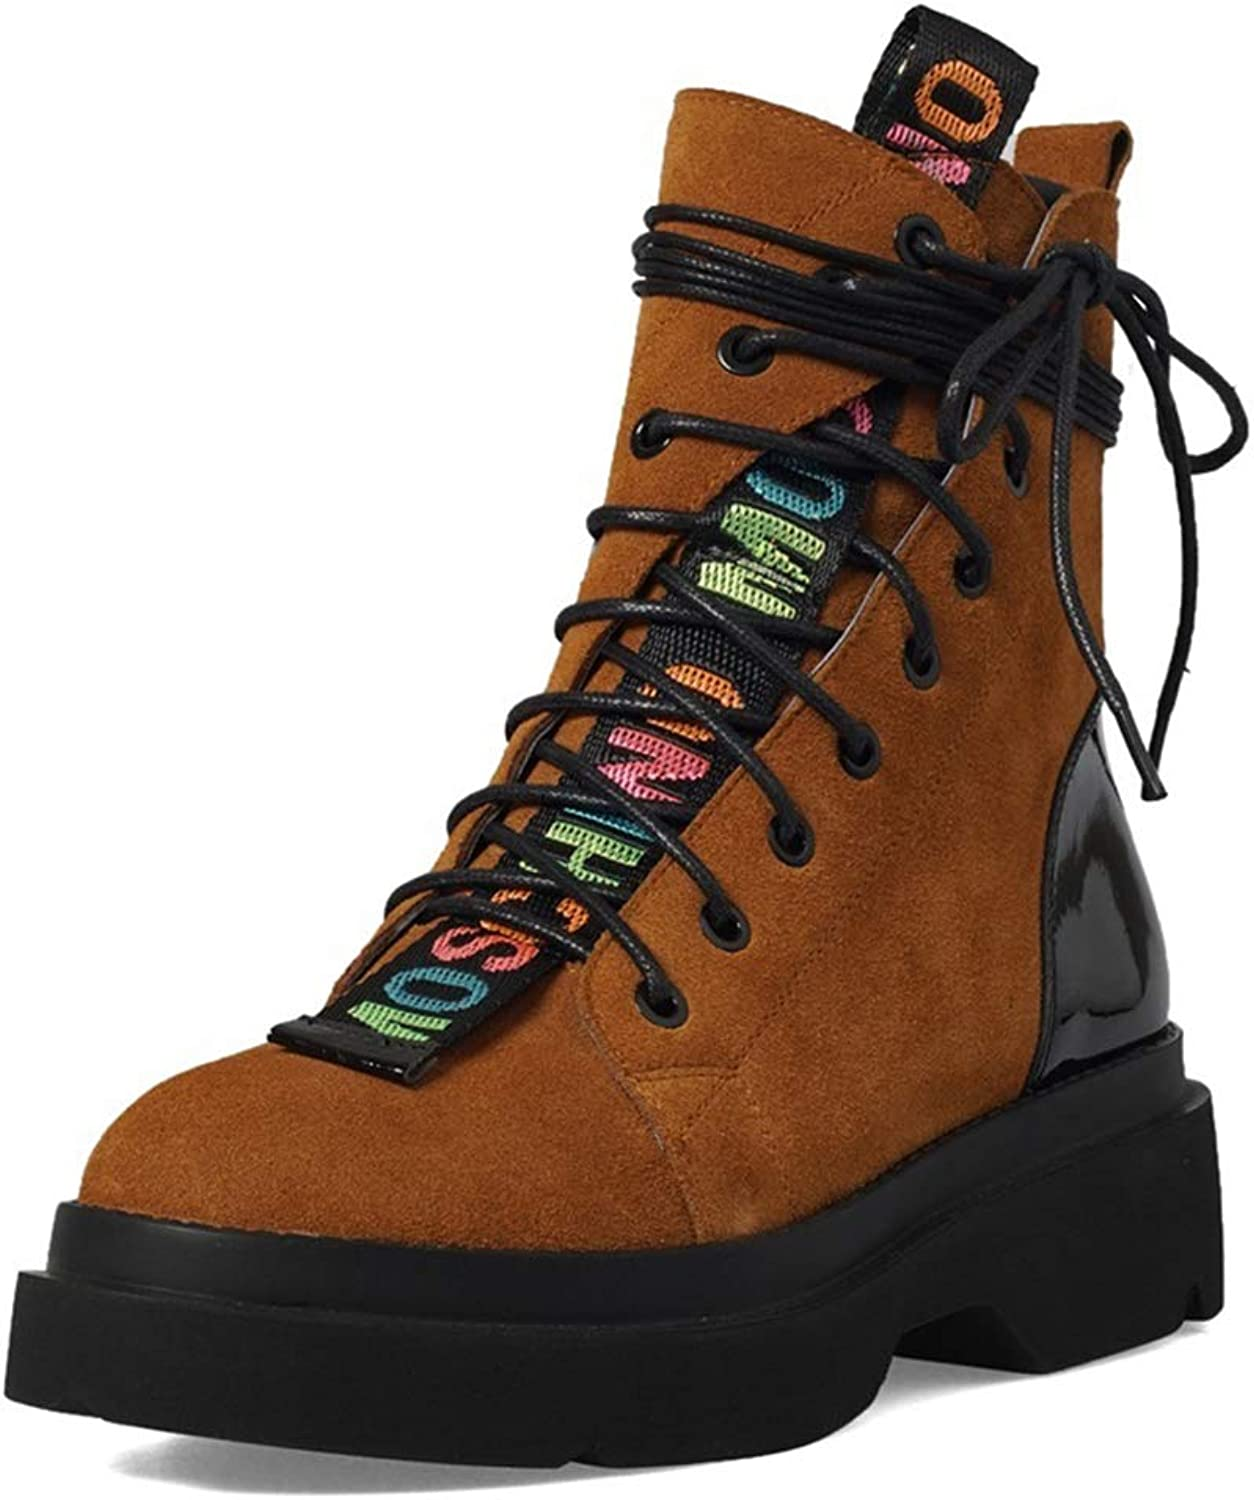 T-JULY Women's shoes Fashion Round Toe Cross-Tied Zip Black and Brown Genuine Leather Med Square Heel Mid Calf Boots